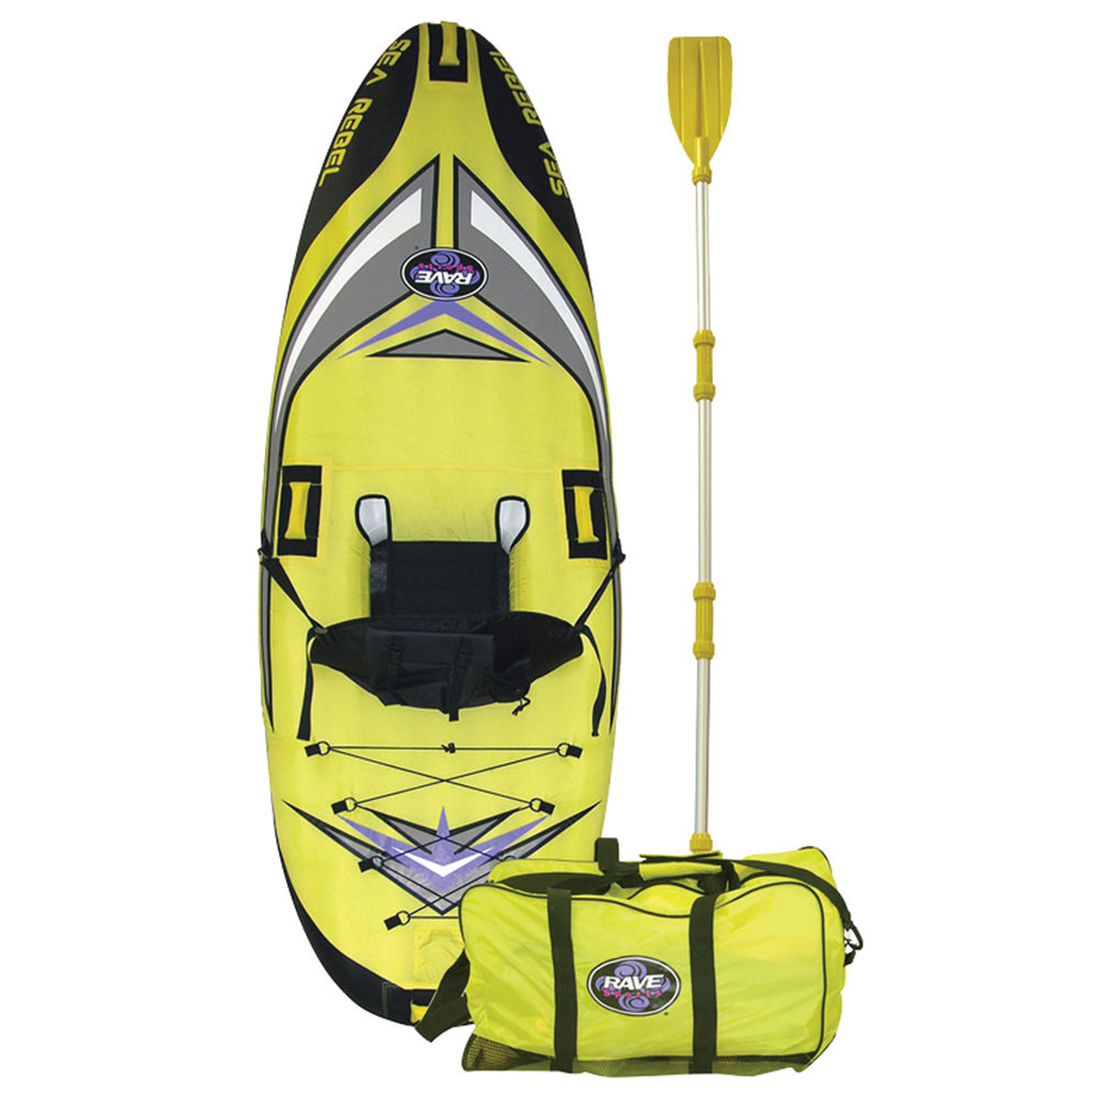 A yellow-and-black kayak standing upright with paddle and bag.